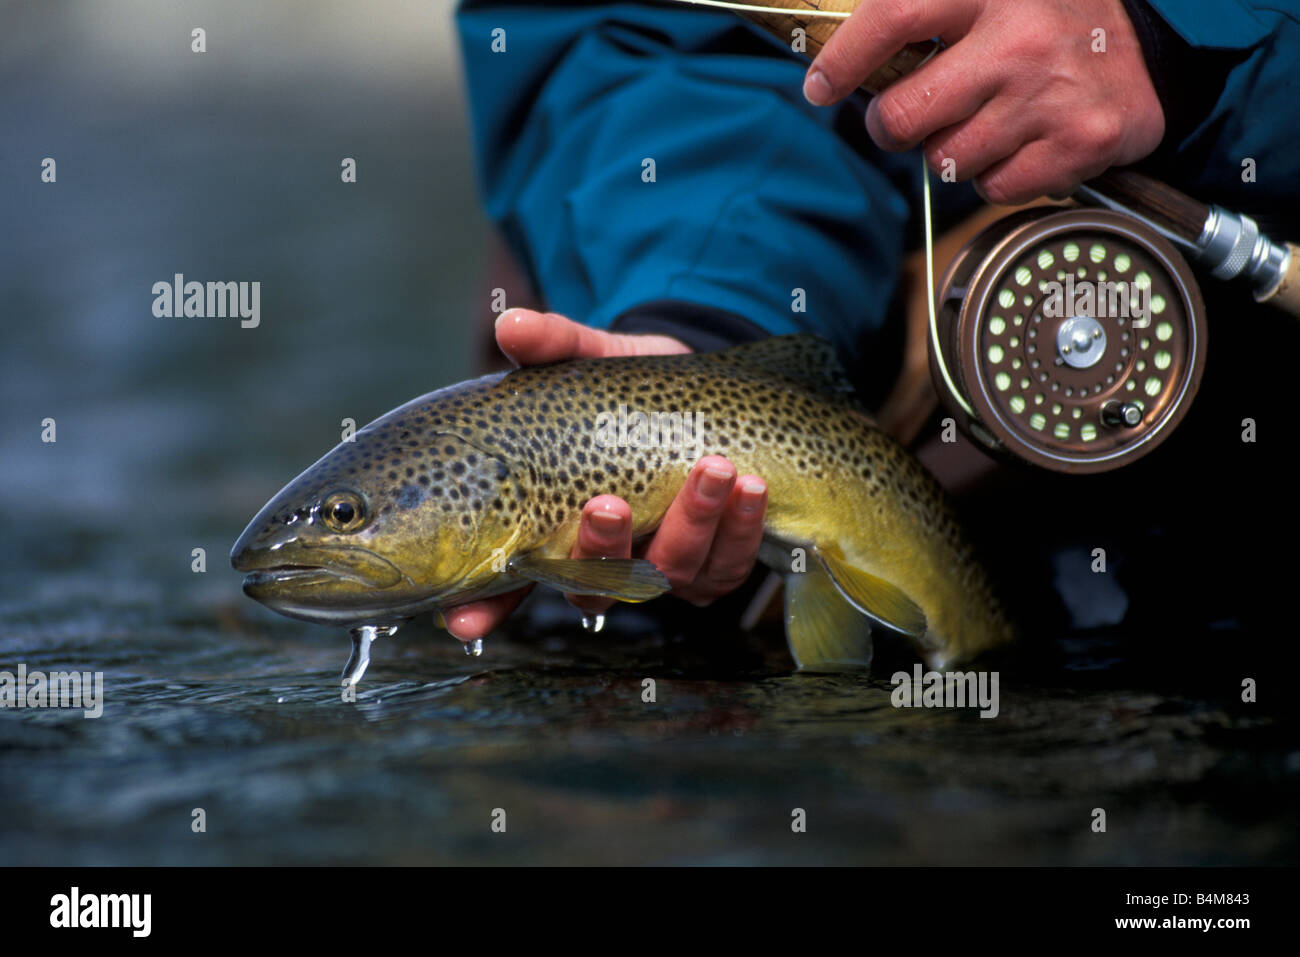 Trout Gill Stock Photos & Trout Gill Stock Images - Alamy